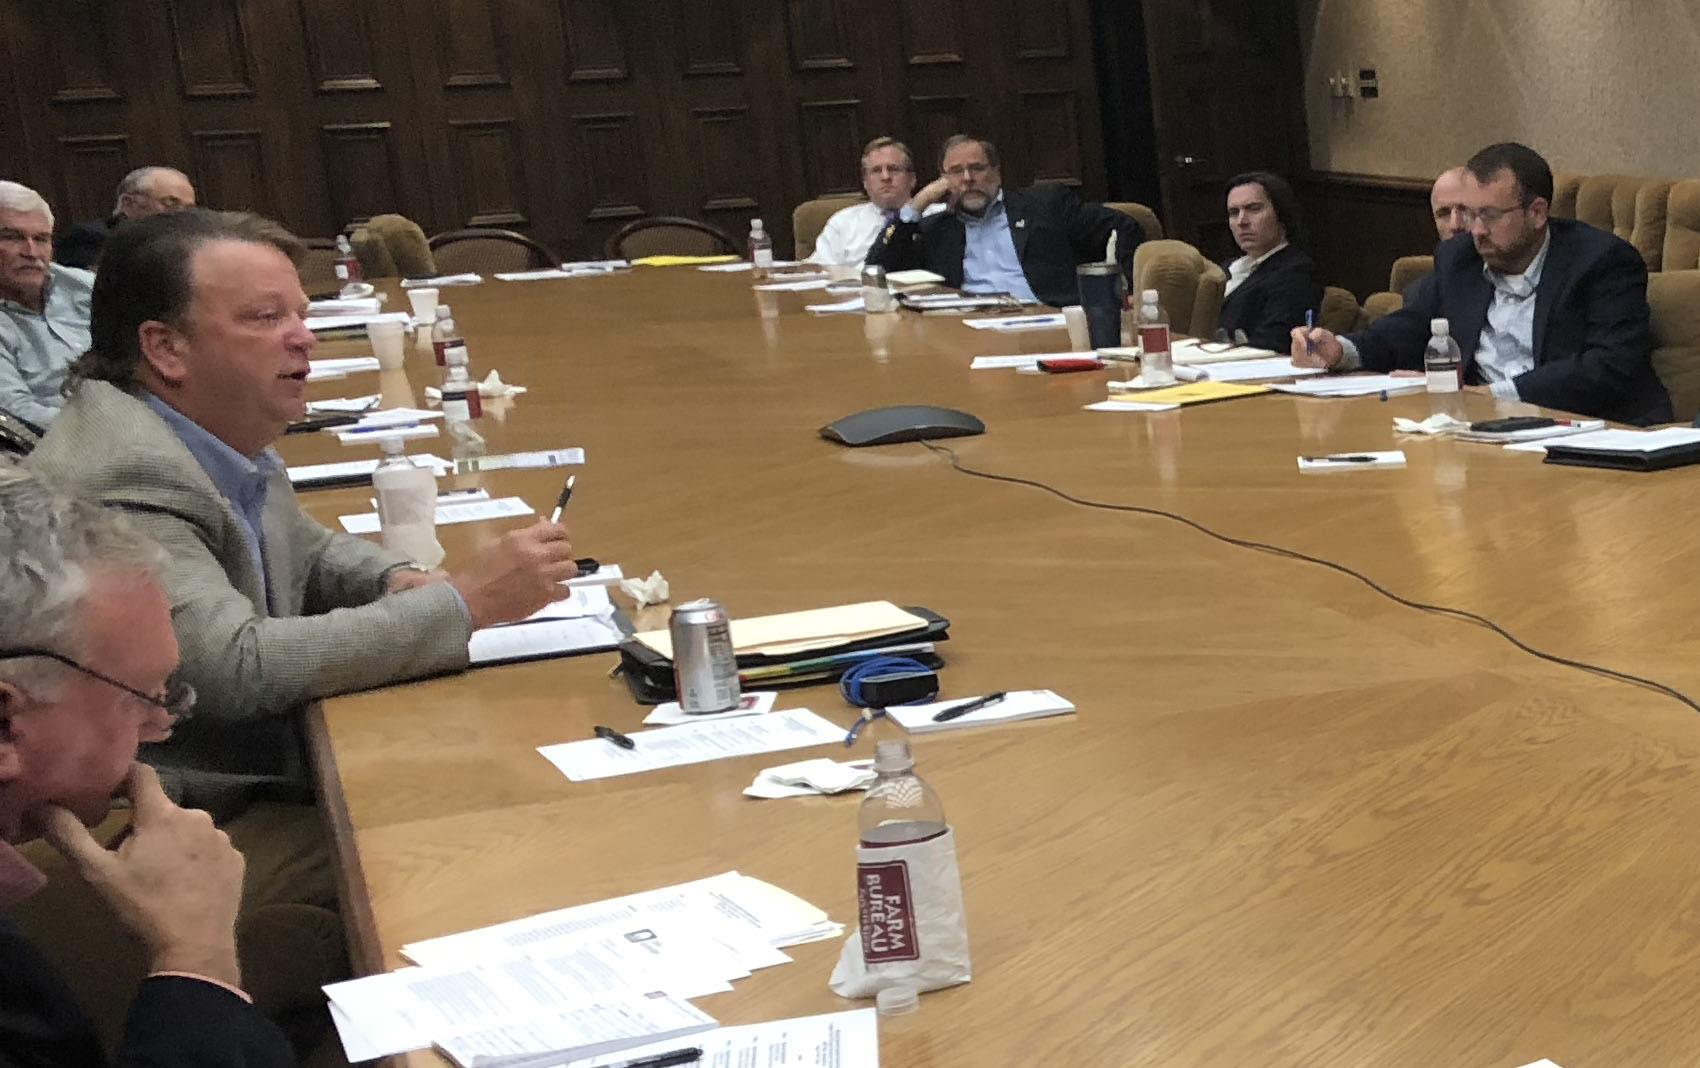 FDA round table discussion in Mississippi, group seated around large wooden table covered with papers